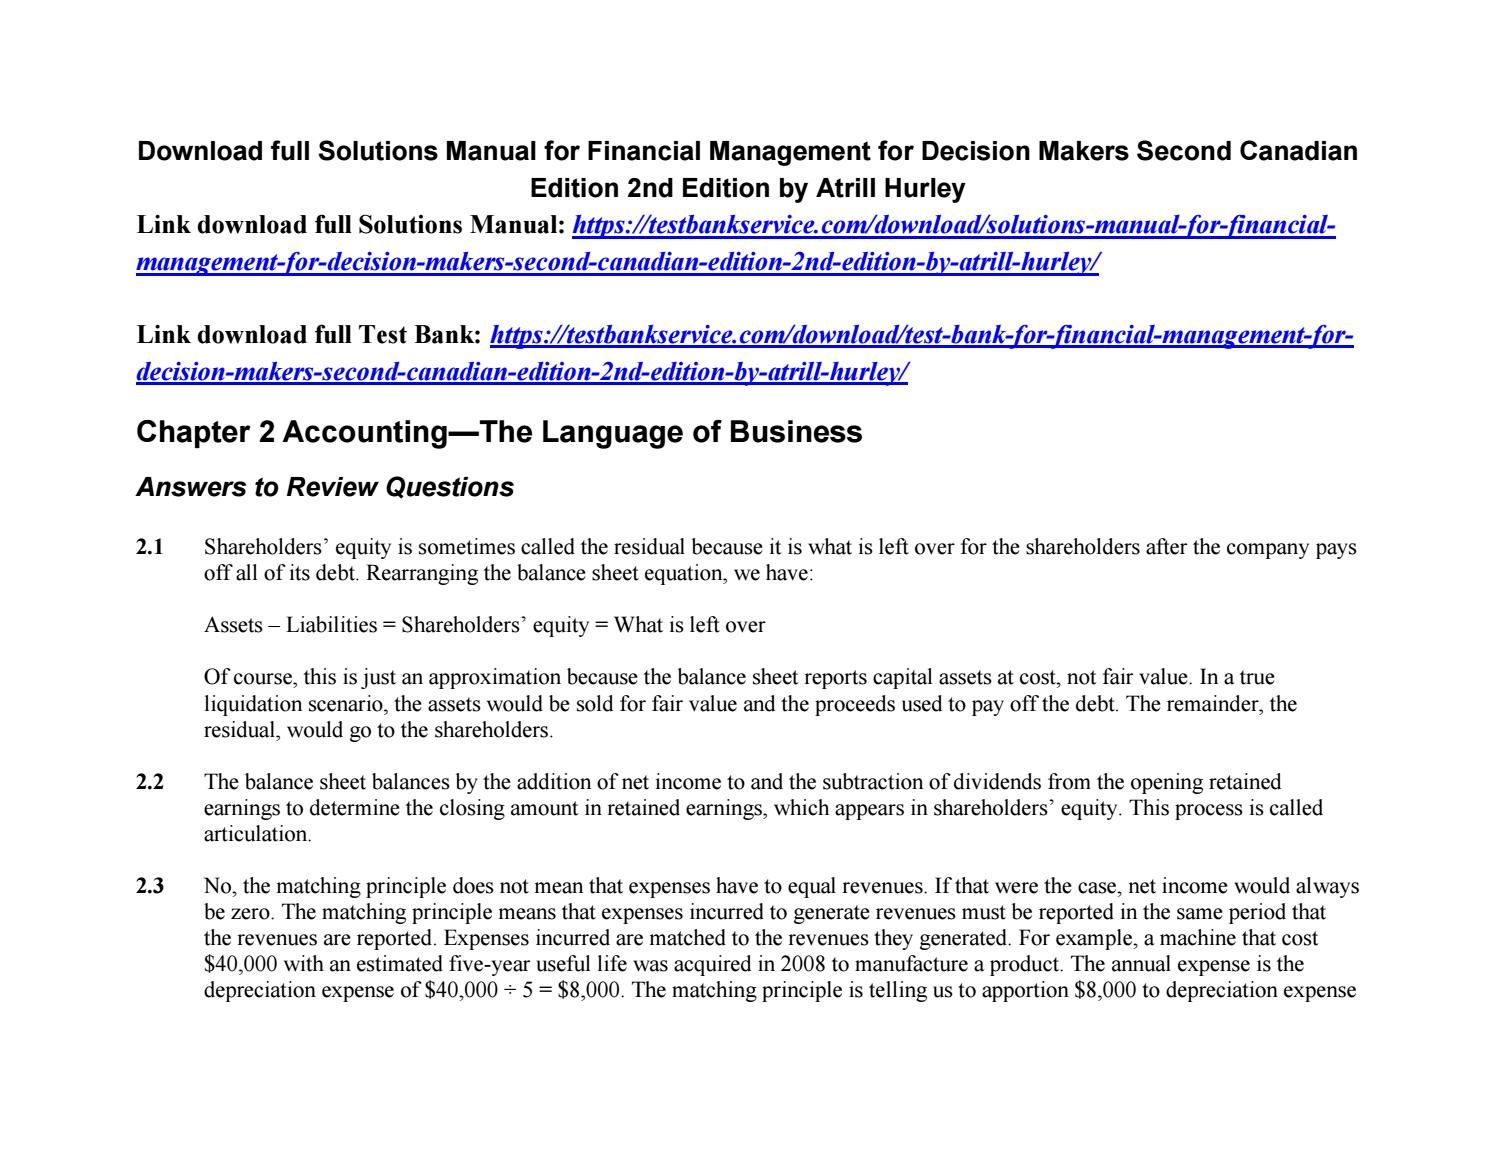 Solutions manual for financial management for decision makers second  canadian edition 2nd edition